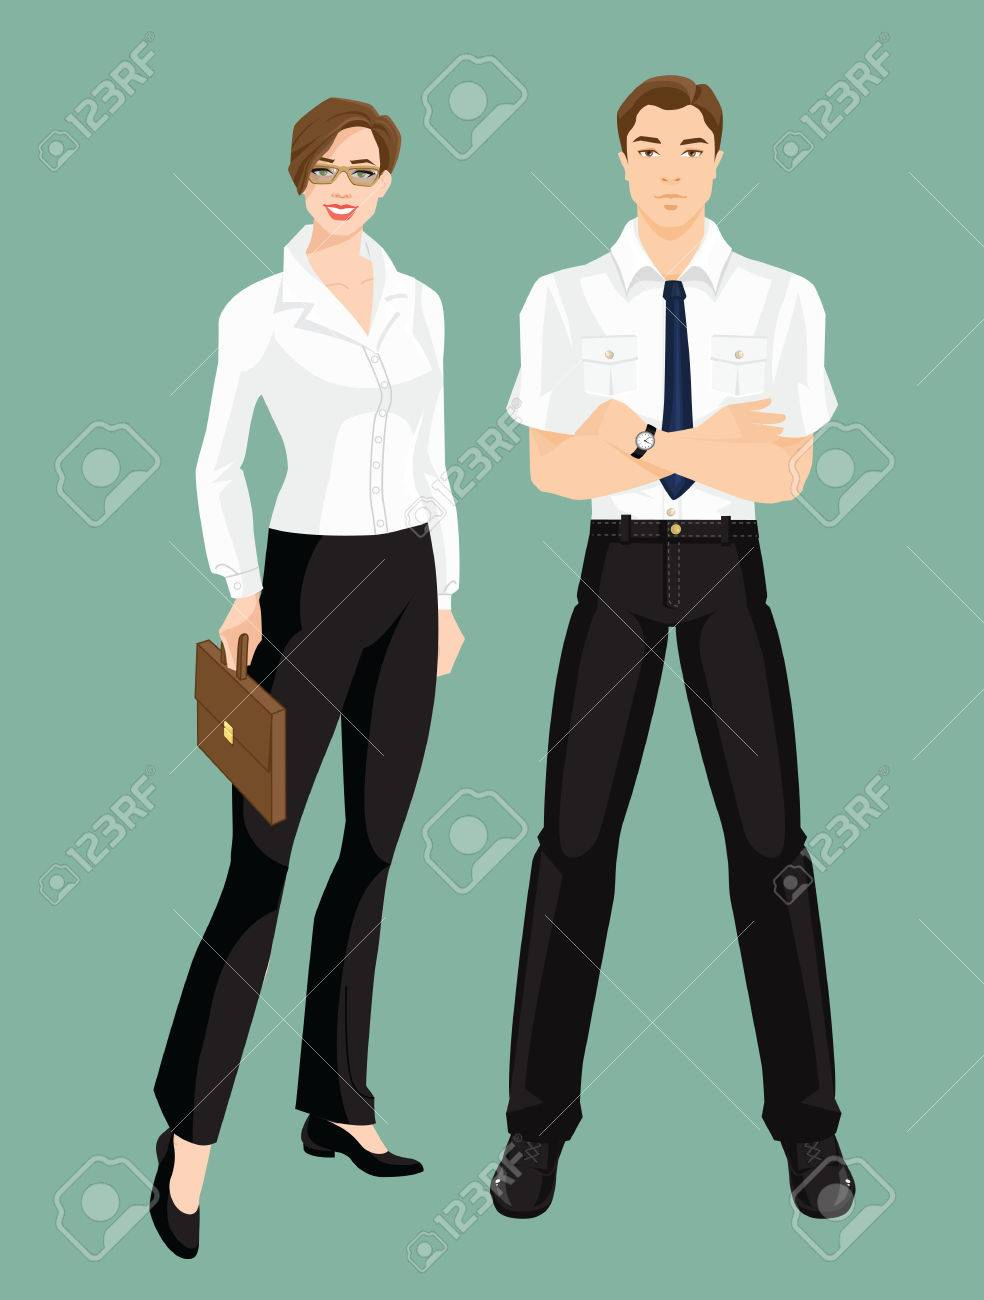 79498585d47e Vector - Vector illustration of corporate dress code, Group of business  people, Professional man and woman in formal clothes isolated on color  background.